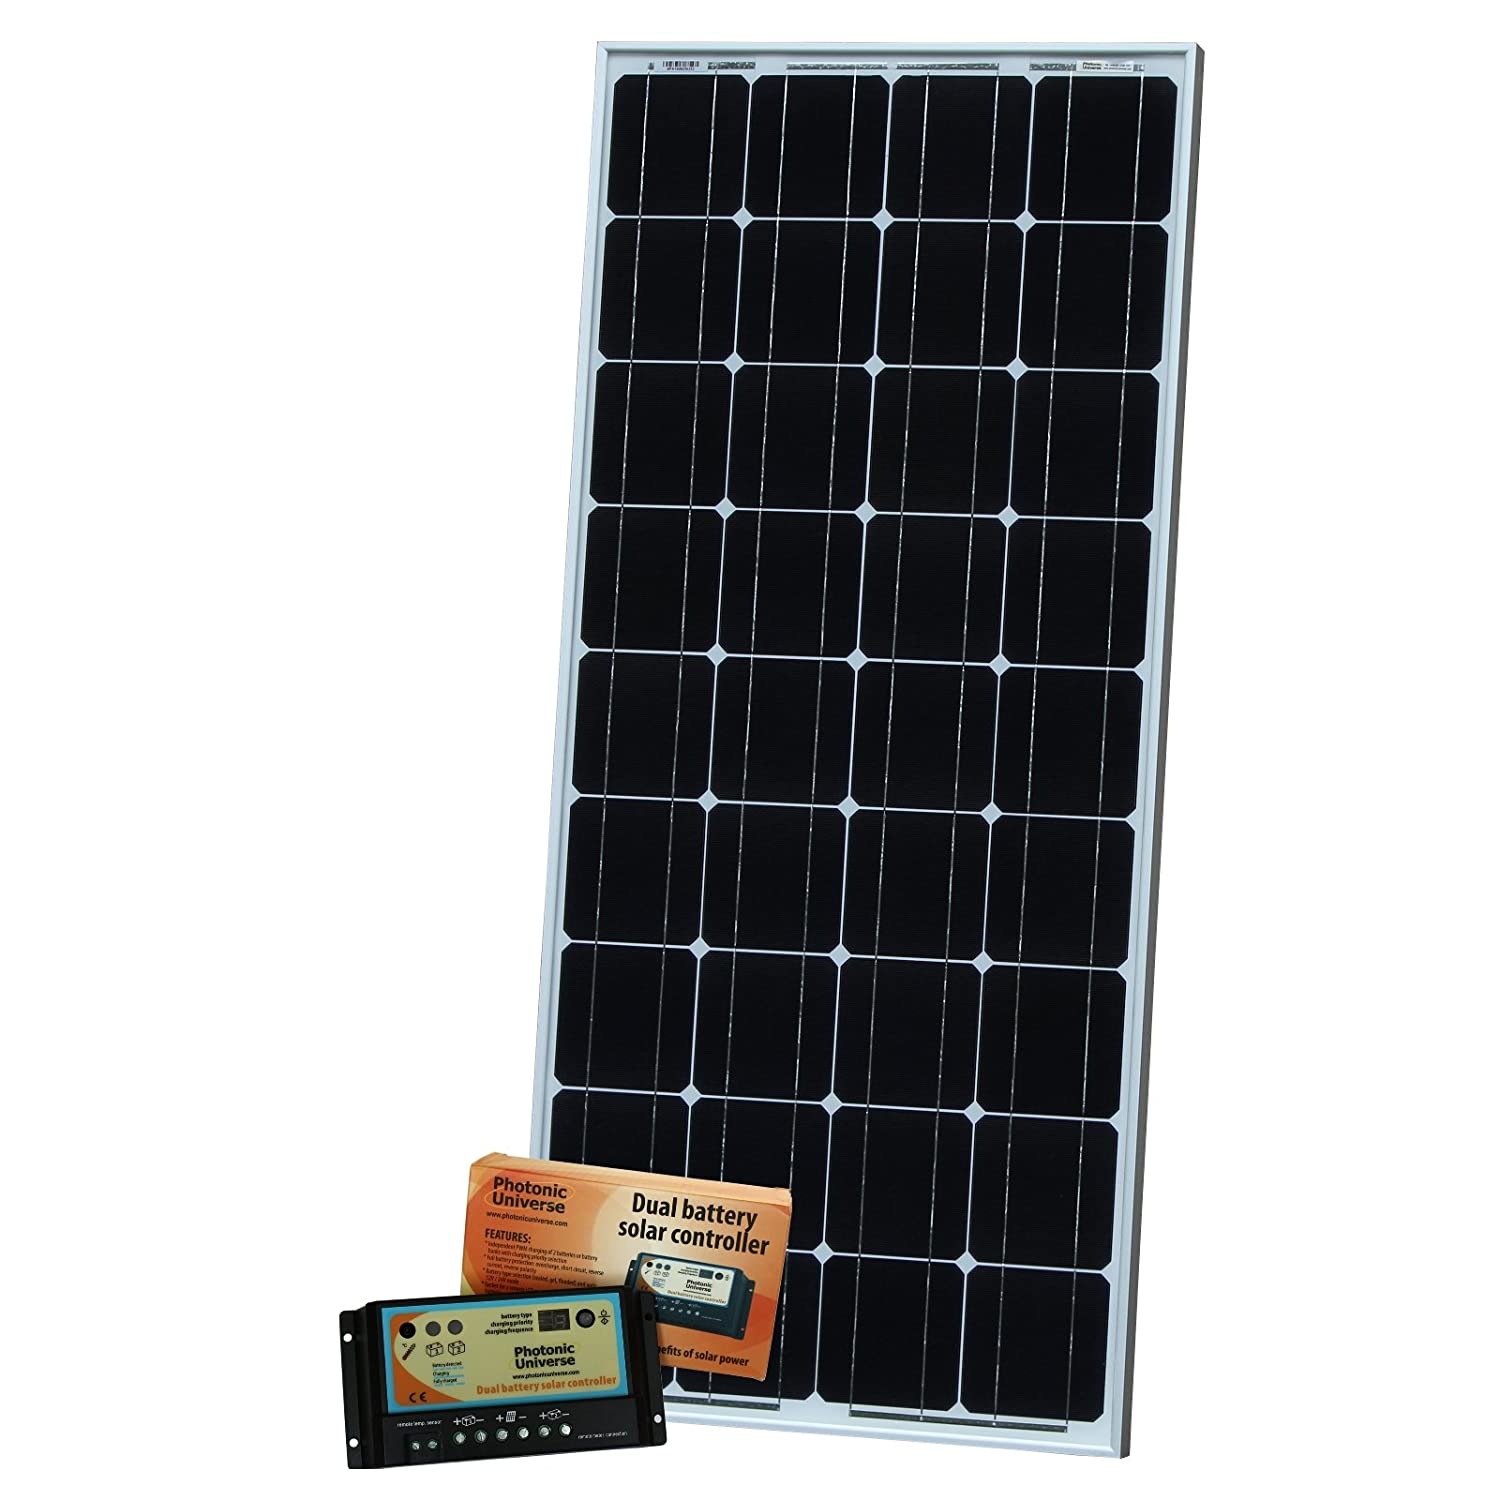 100W Photonic Universe monocrystalline dual battery solar charging kit with 10A automatic solar charge controller (prevents overcharge and back flow) and 5m cable for charging 12V battery SPA-100M-DB1024